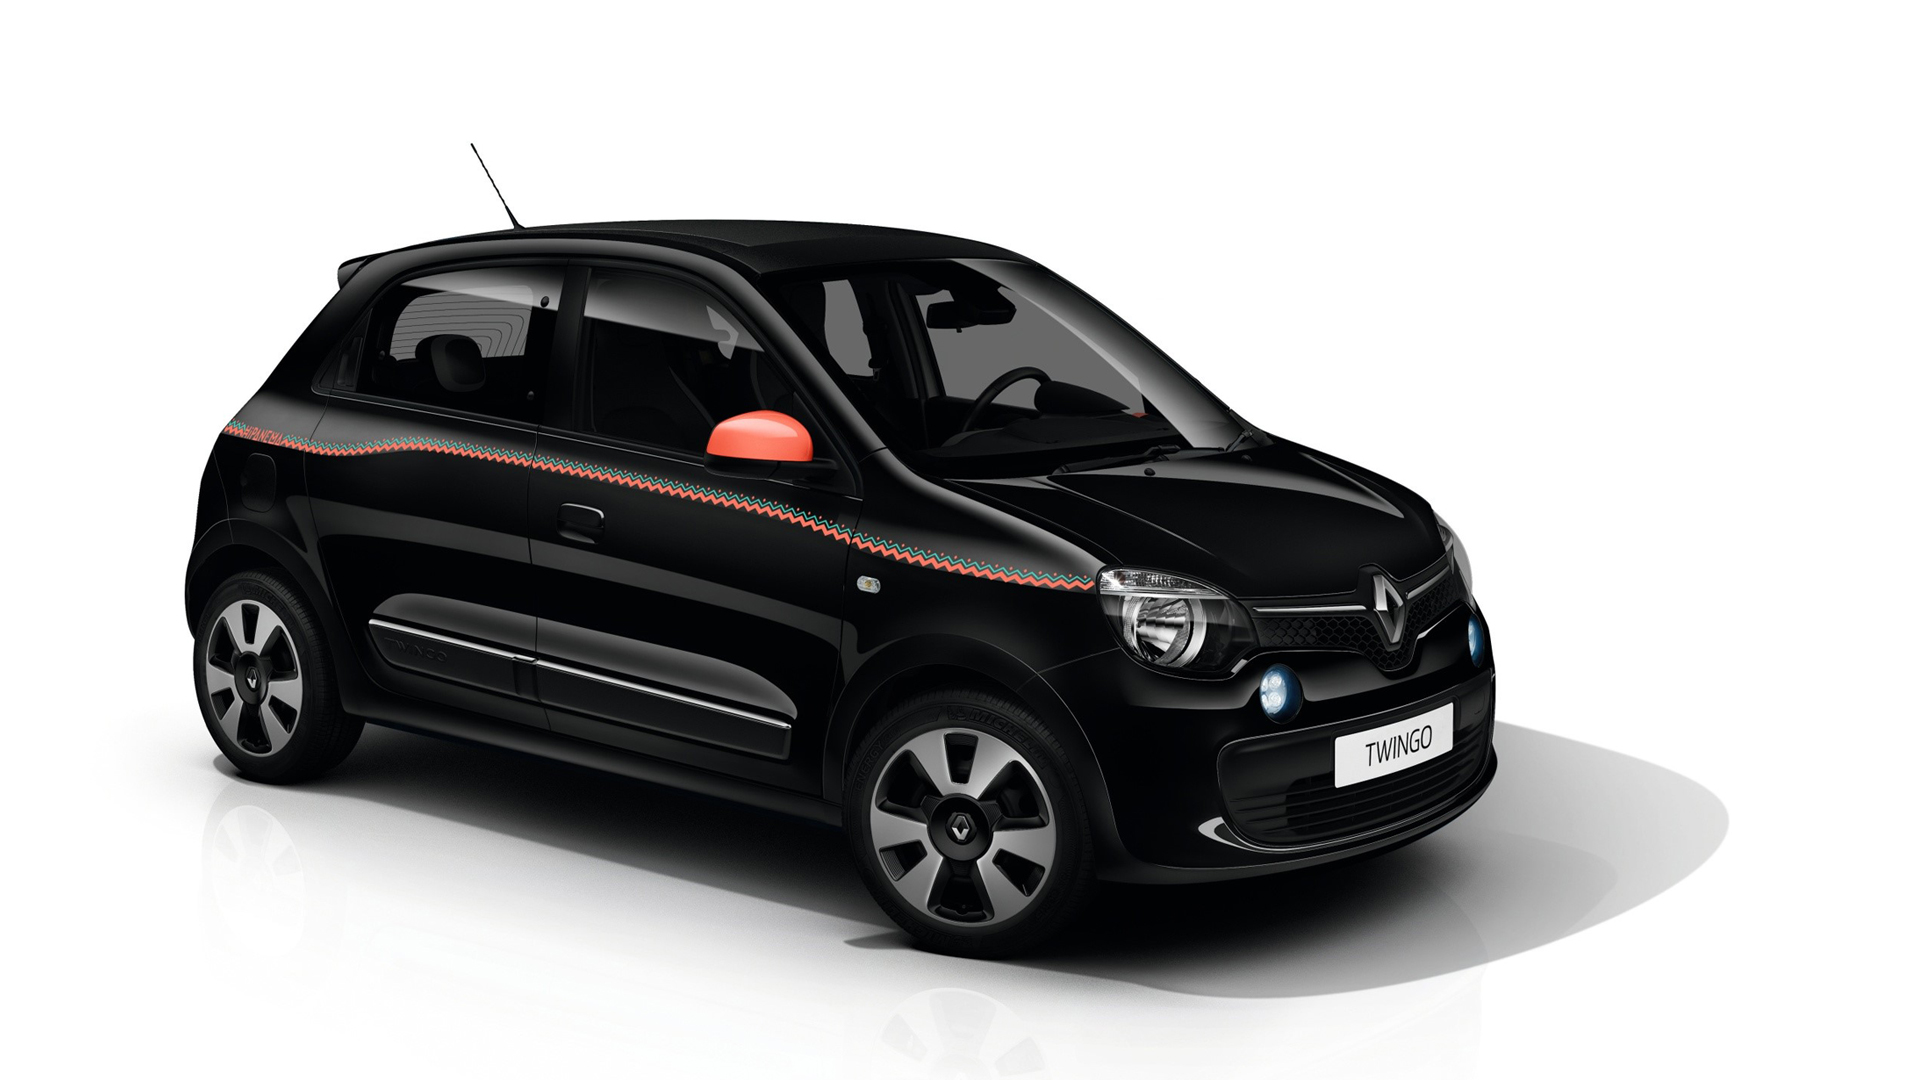 renault twingo couleur en quelle couleur pr f rez vous la twingo ii phase 2 twingo renault. Black Bedroom Furniture Sets. Home Design Ideas